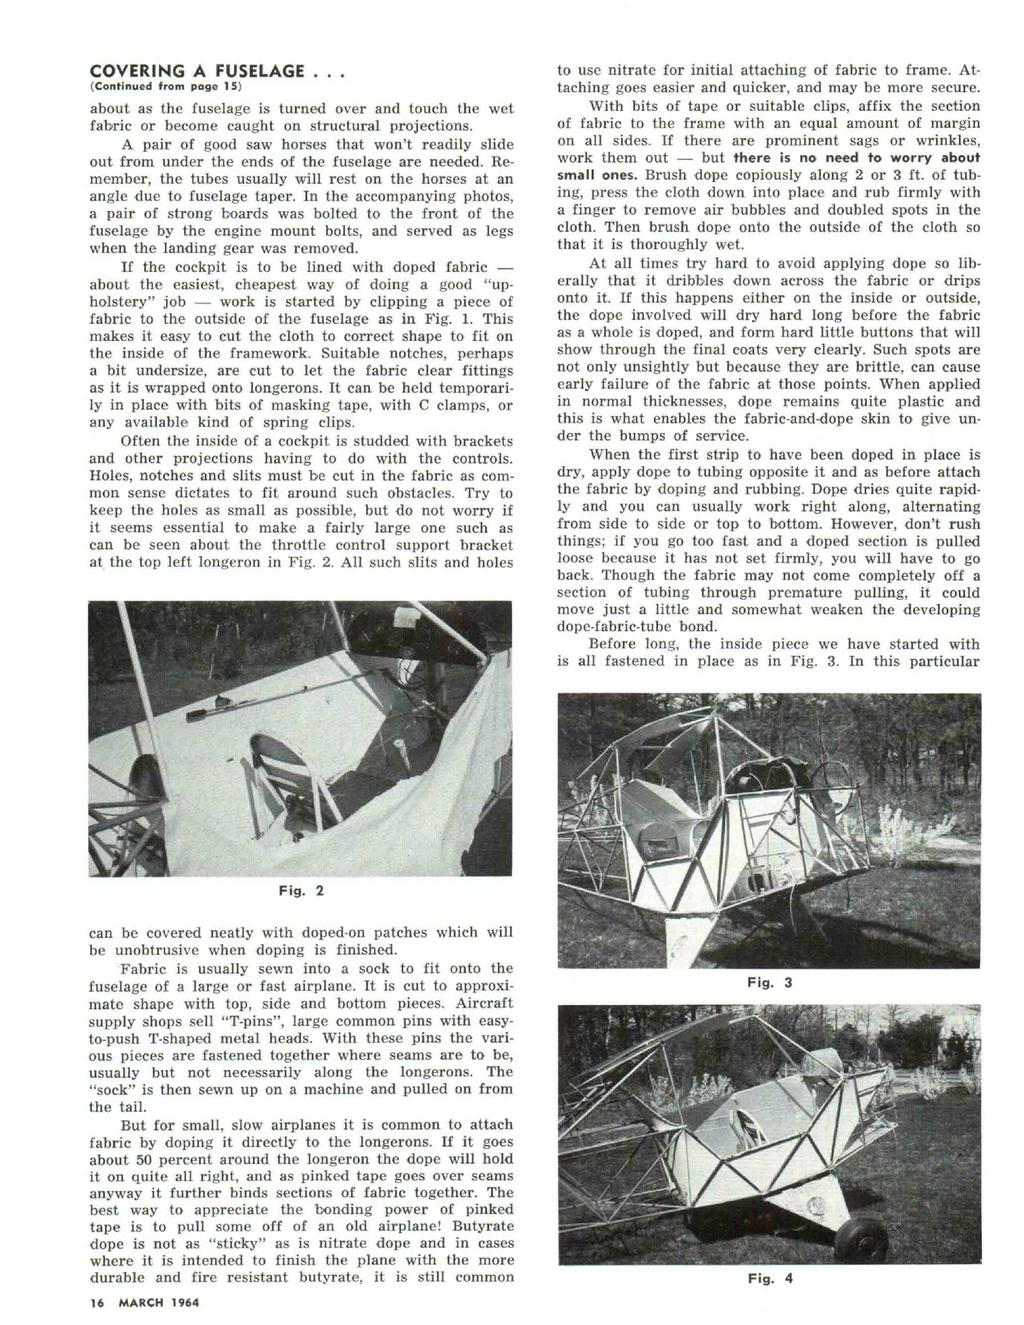 COVERING A FUSELAGE... (Continued from page 15) about as the fuselage is turned over and touch the wet fabric or become caught on structural projections.